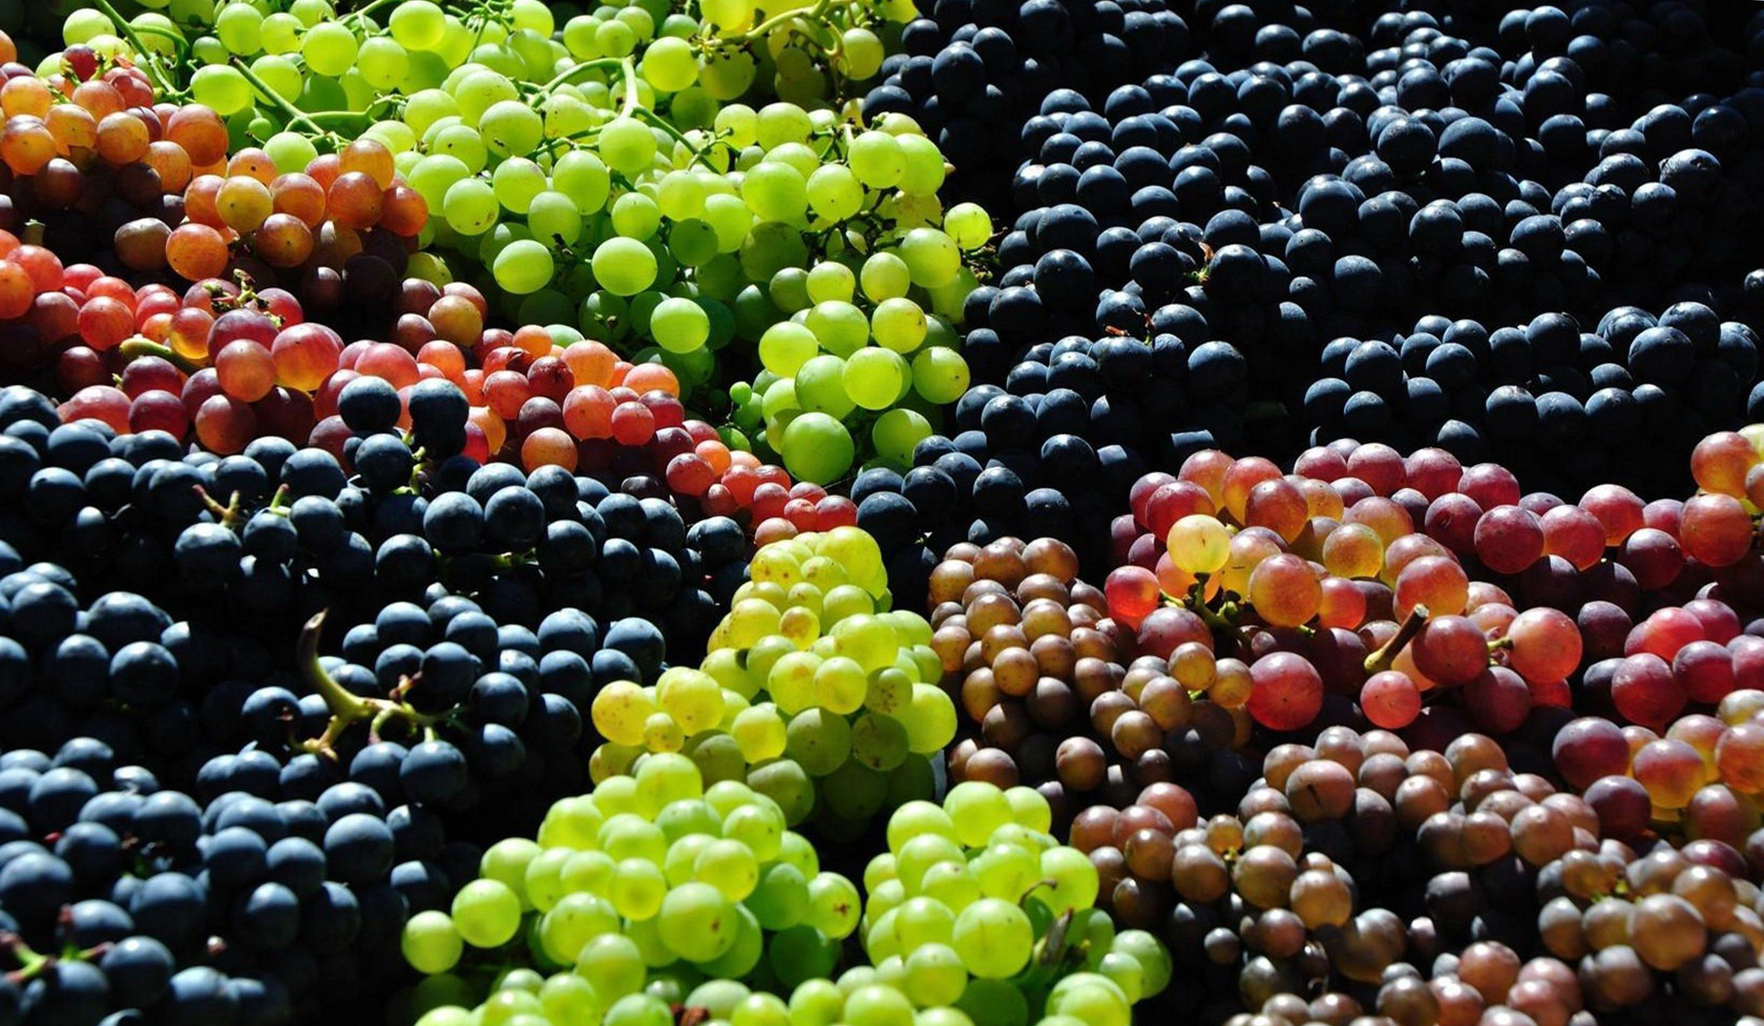 Cute Animal Wallpapers For Desktop Background Full Screen Grapes In Different Colors Wallpapers Hd Desktop And